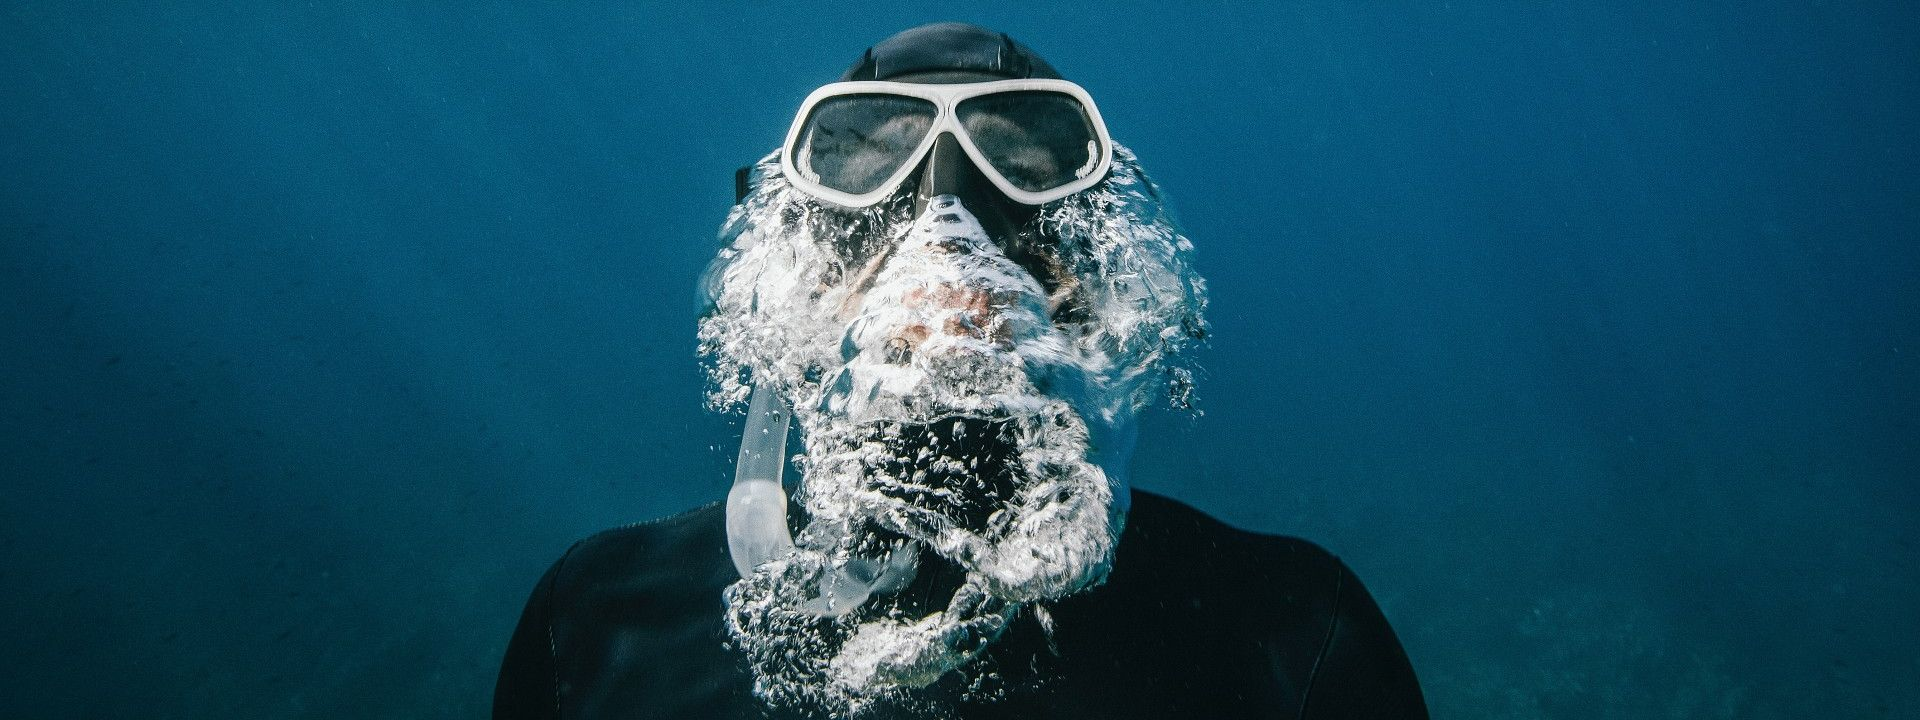 How to Improve Your Air Consumption While Diving